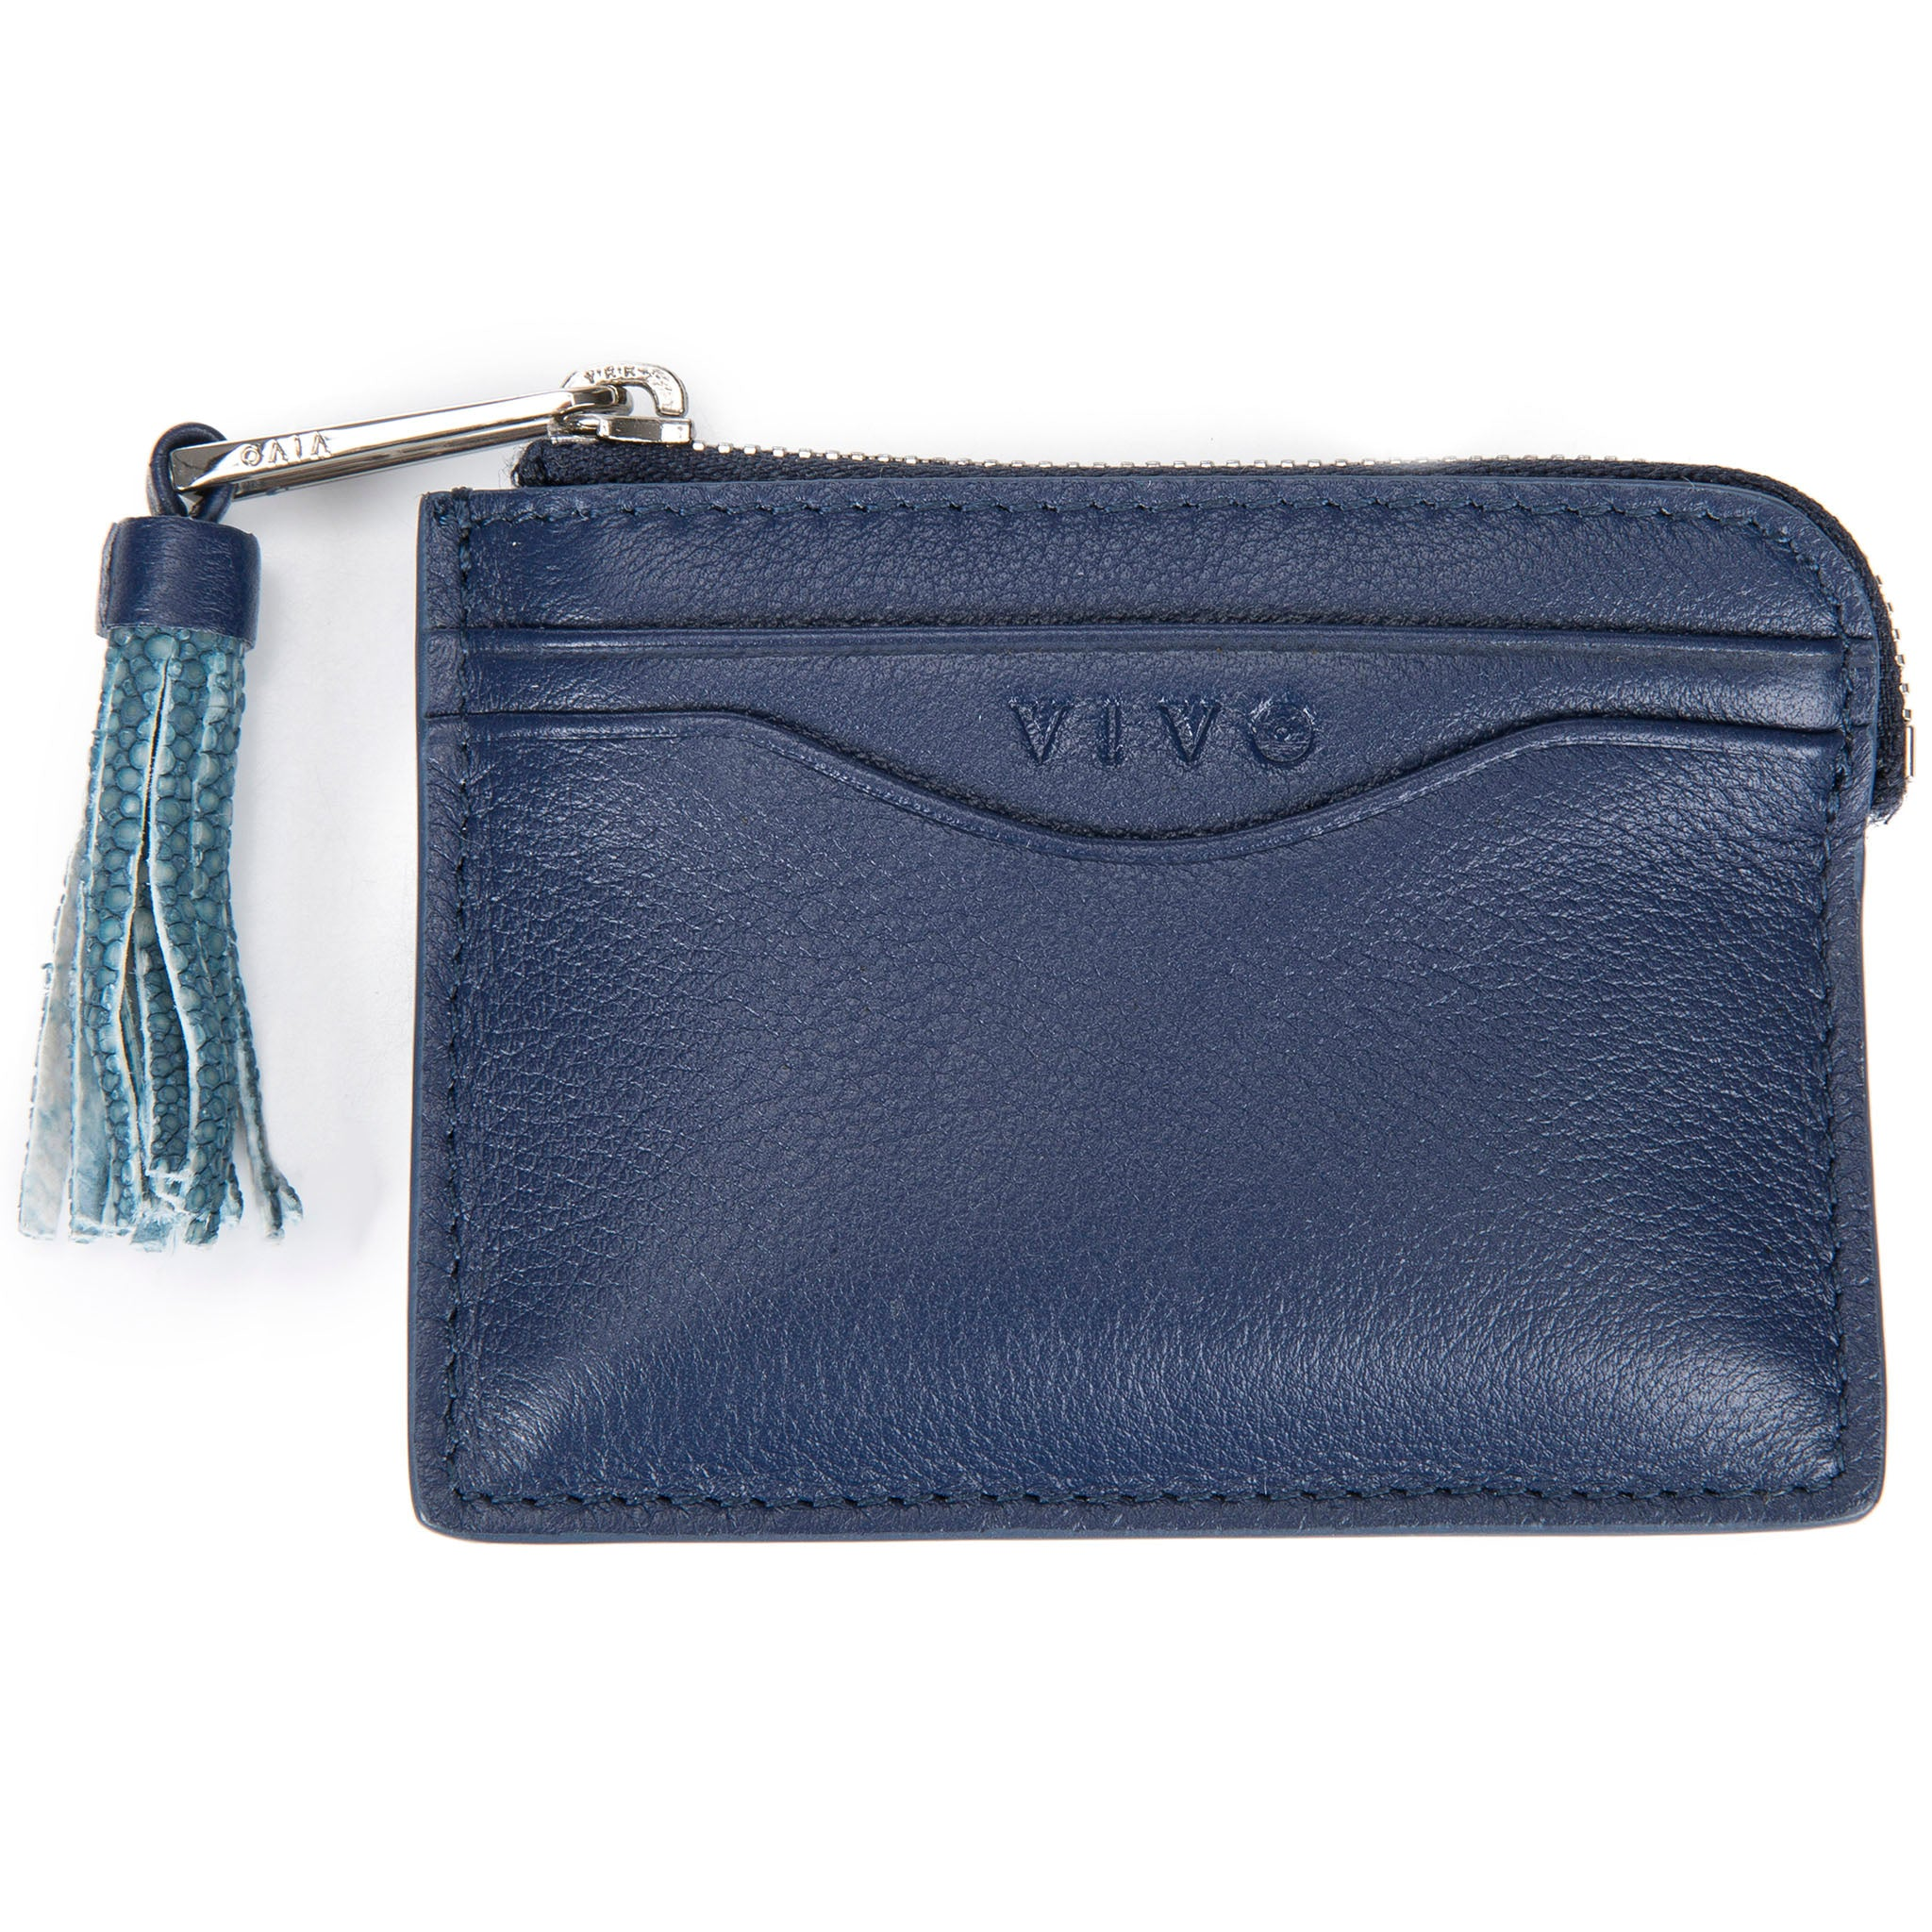 Navy Leather Zipper Card Or Coin Case With Shagreen Tassel Pull Front View Avery - Vivo Direct